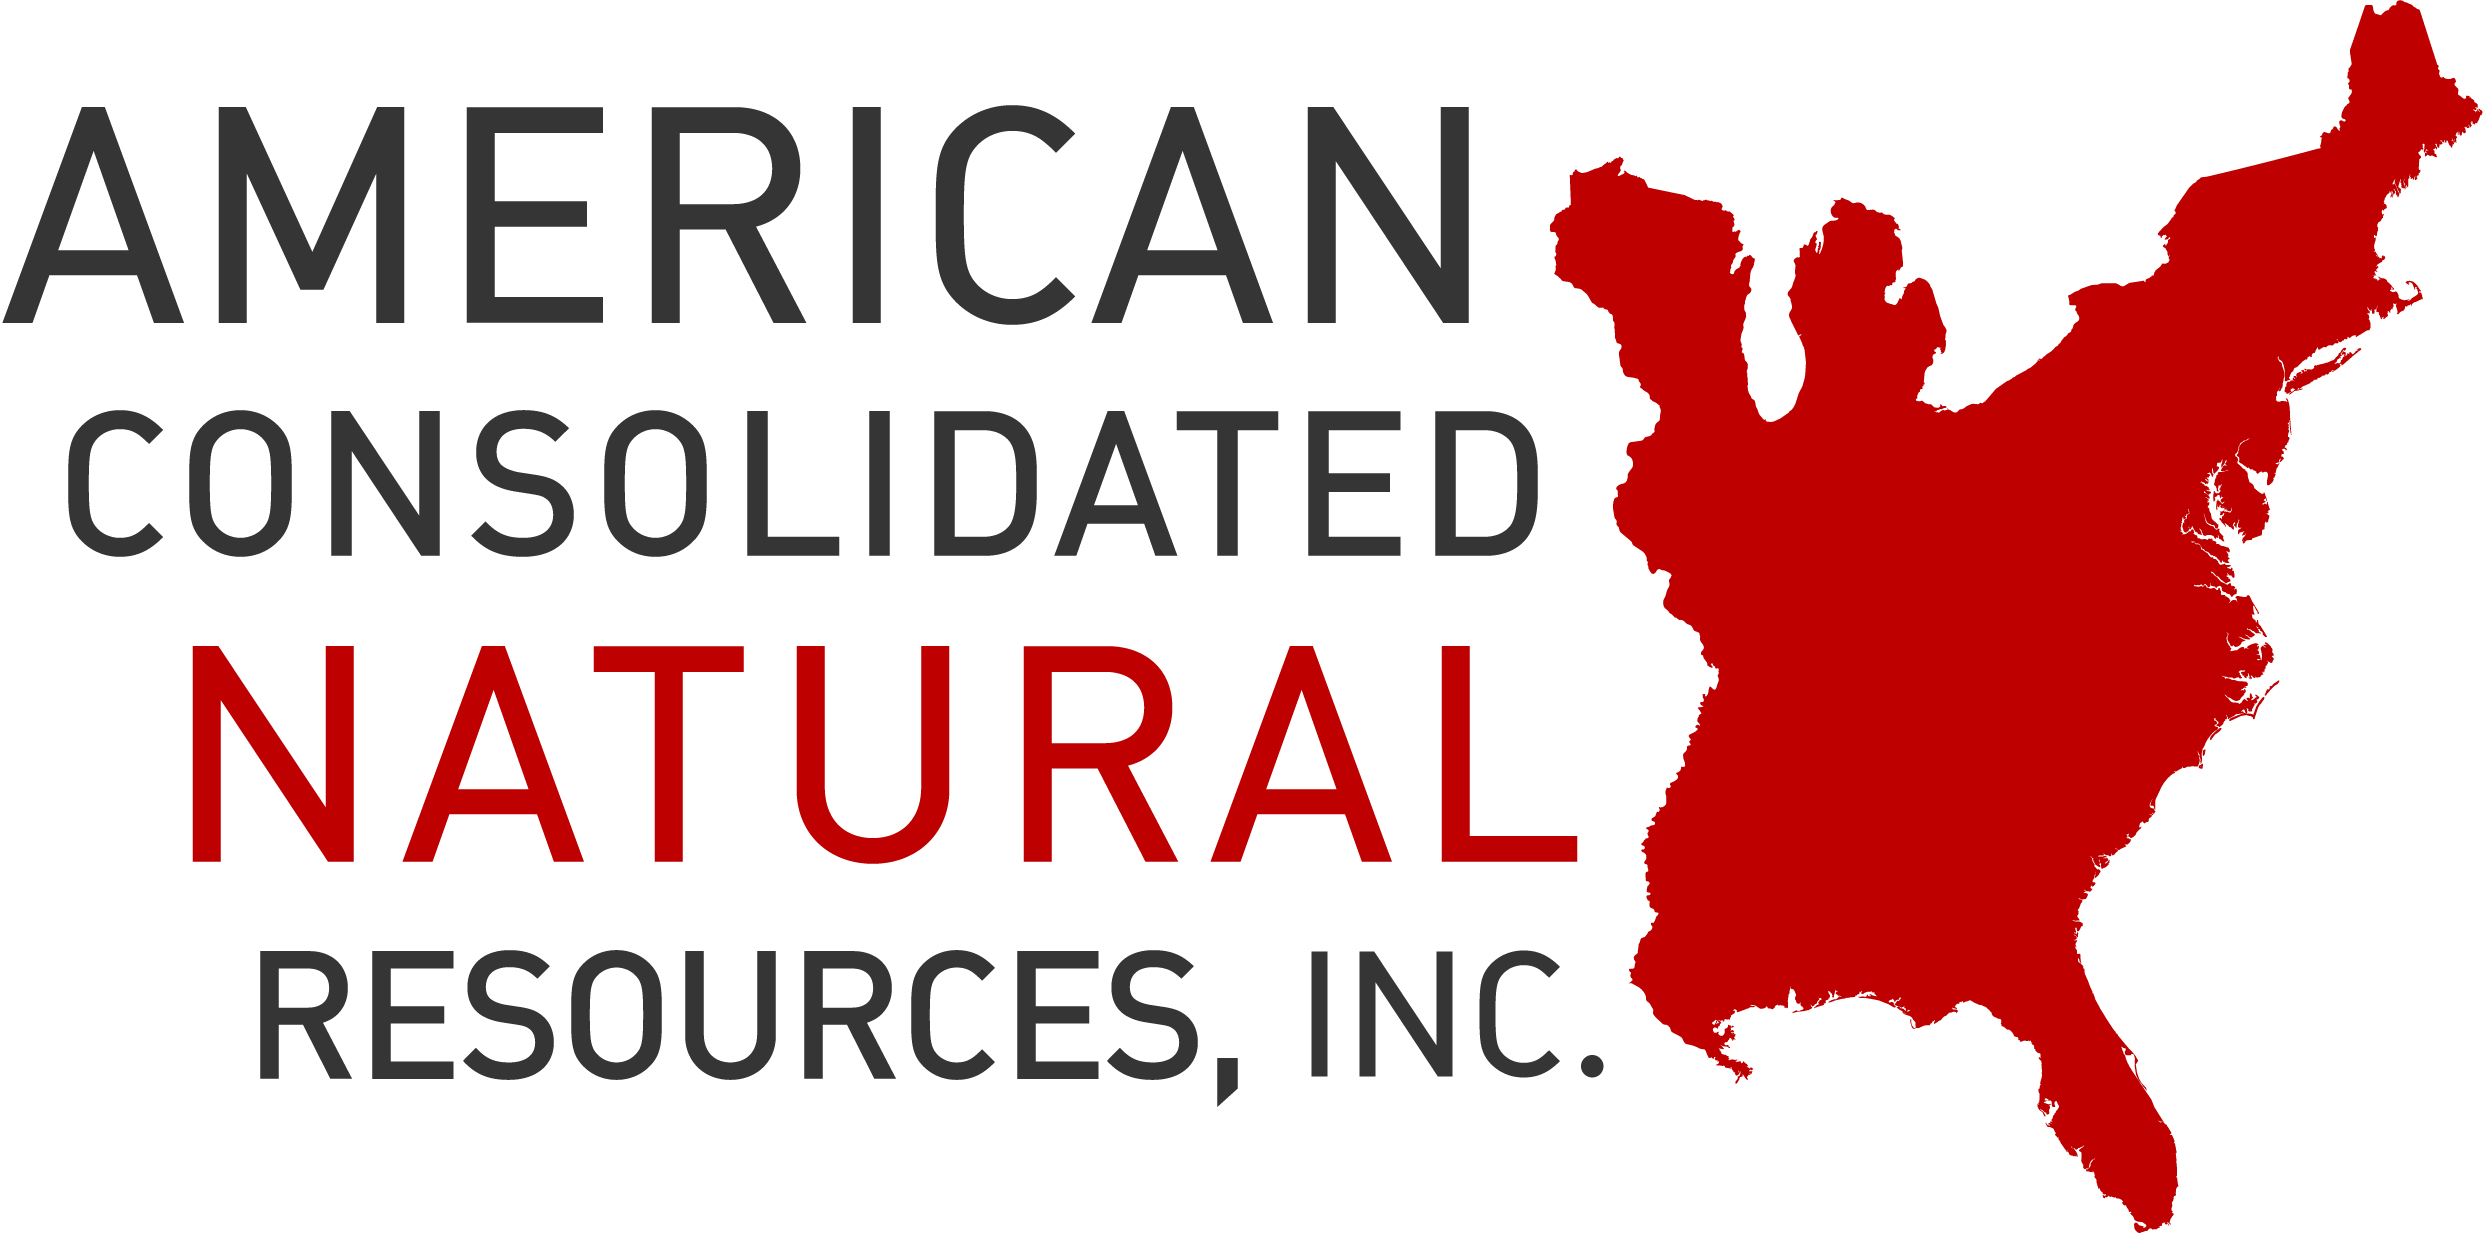 American Consolidated Natural Resources